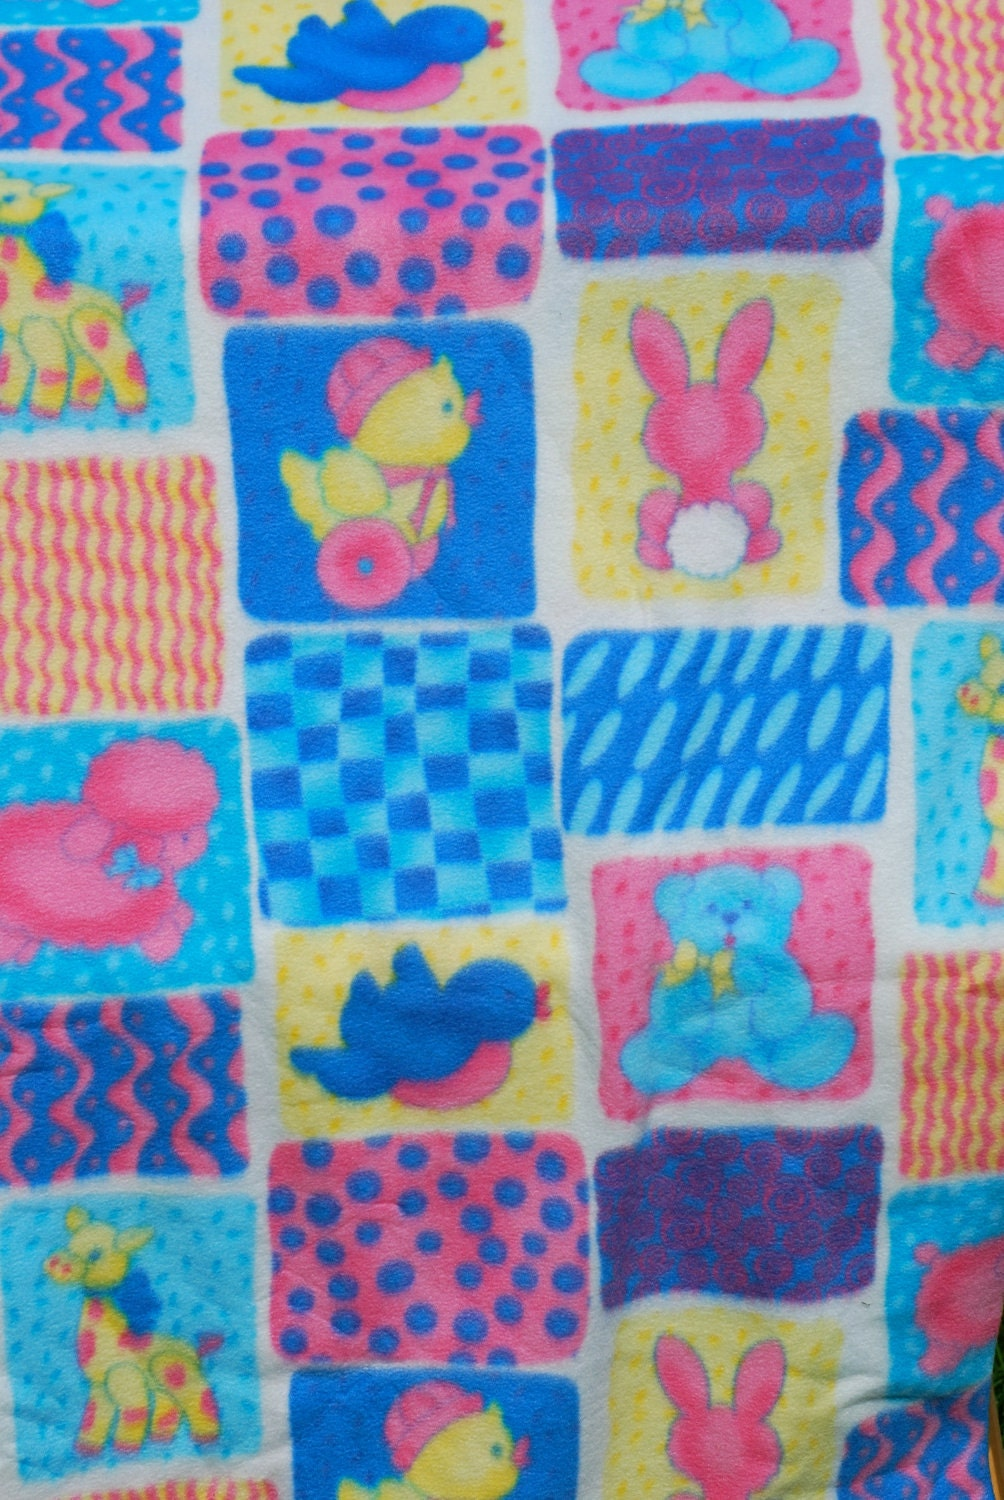 cute baby print fleece fabric bears bunnies by